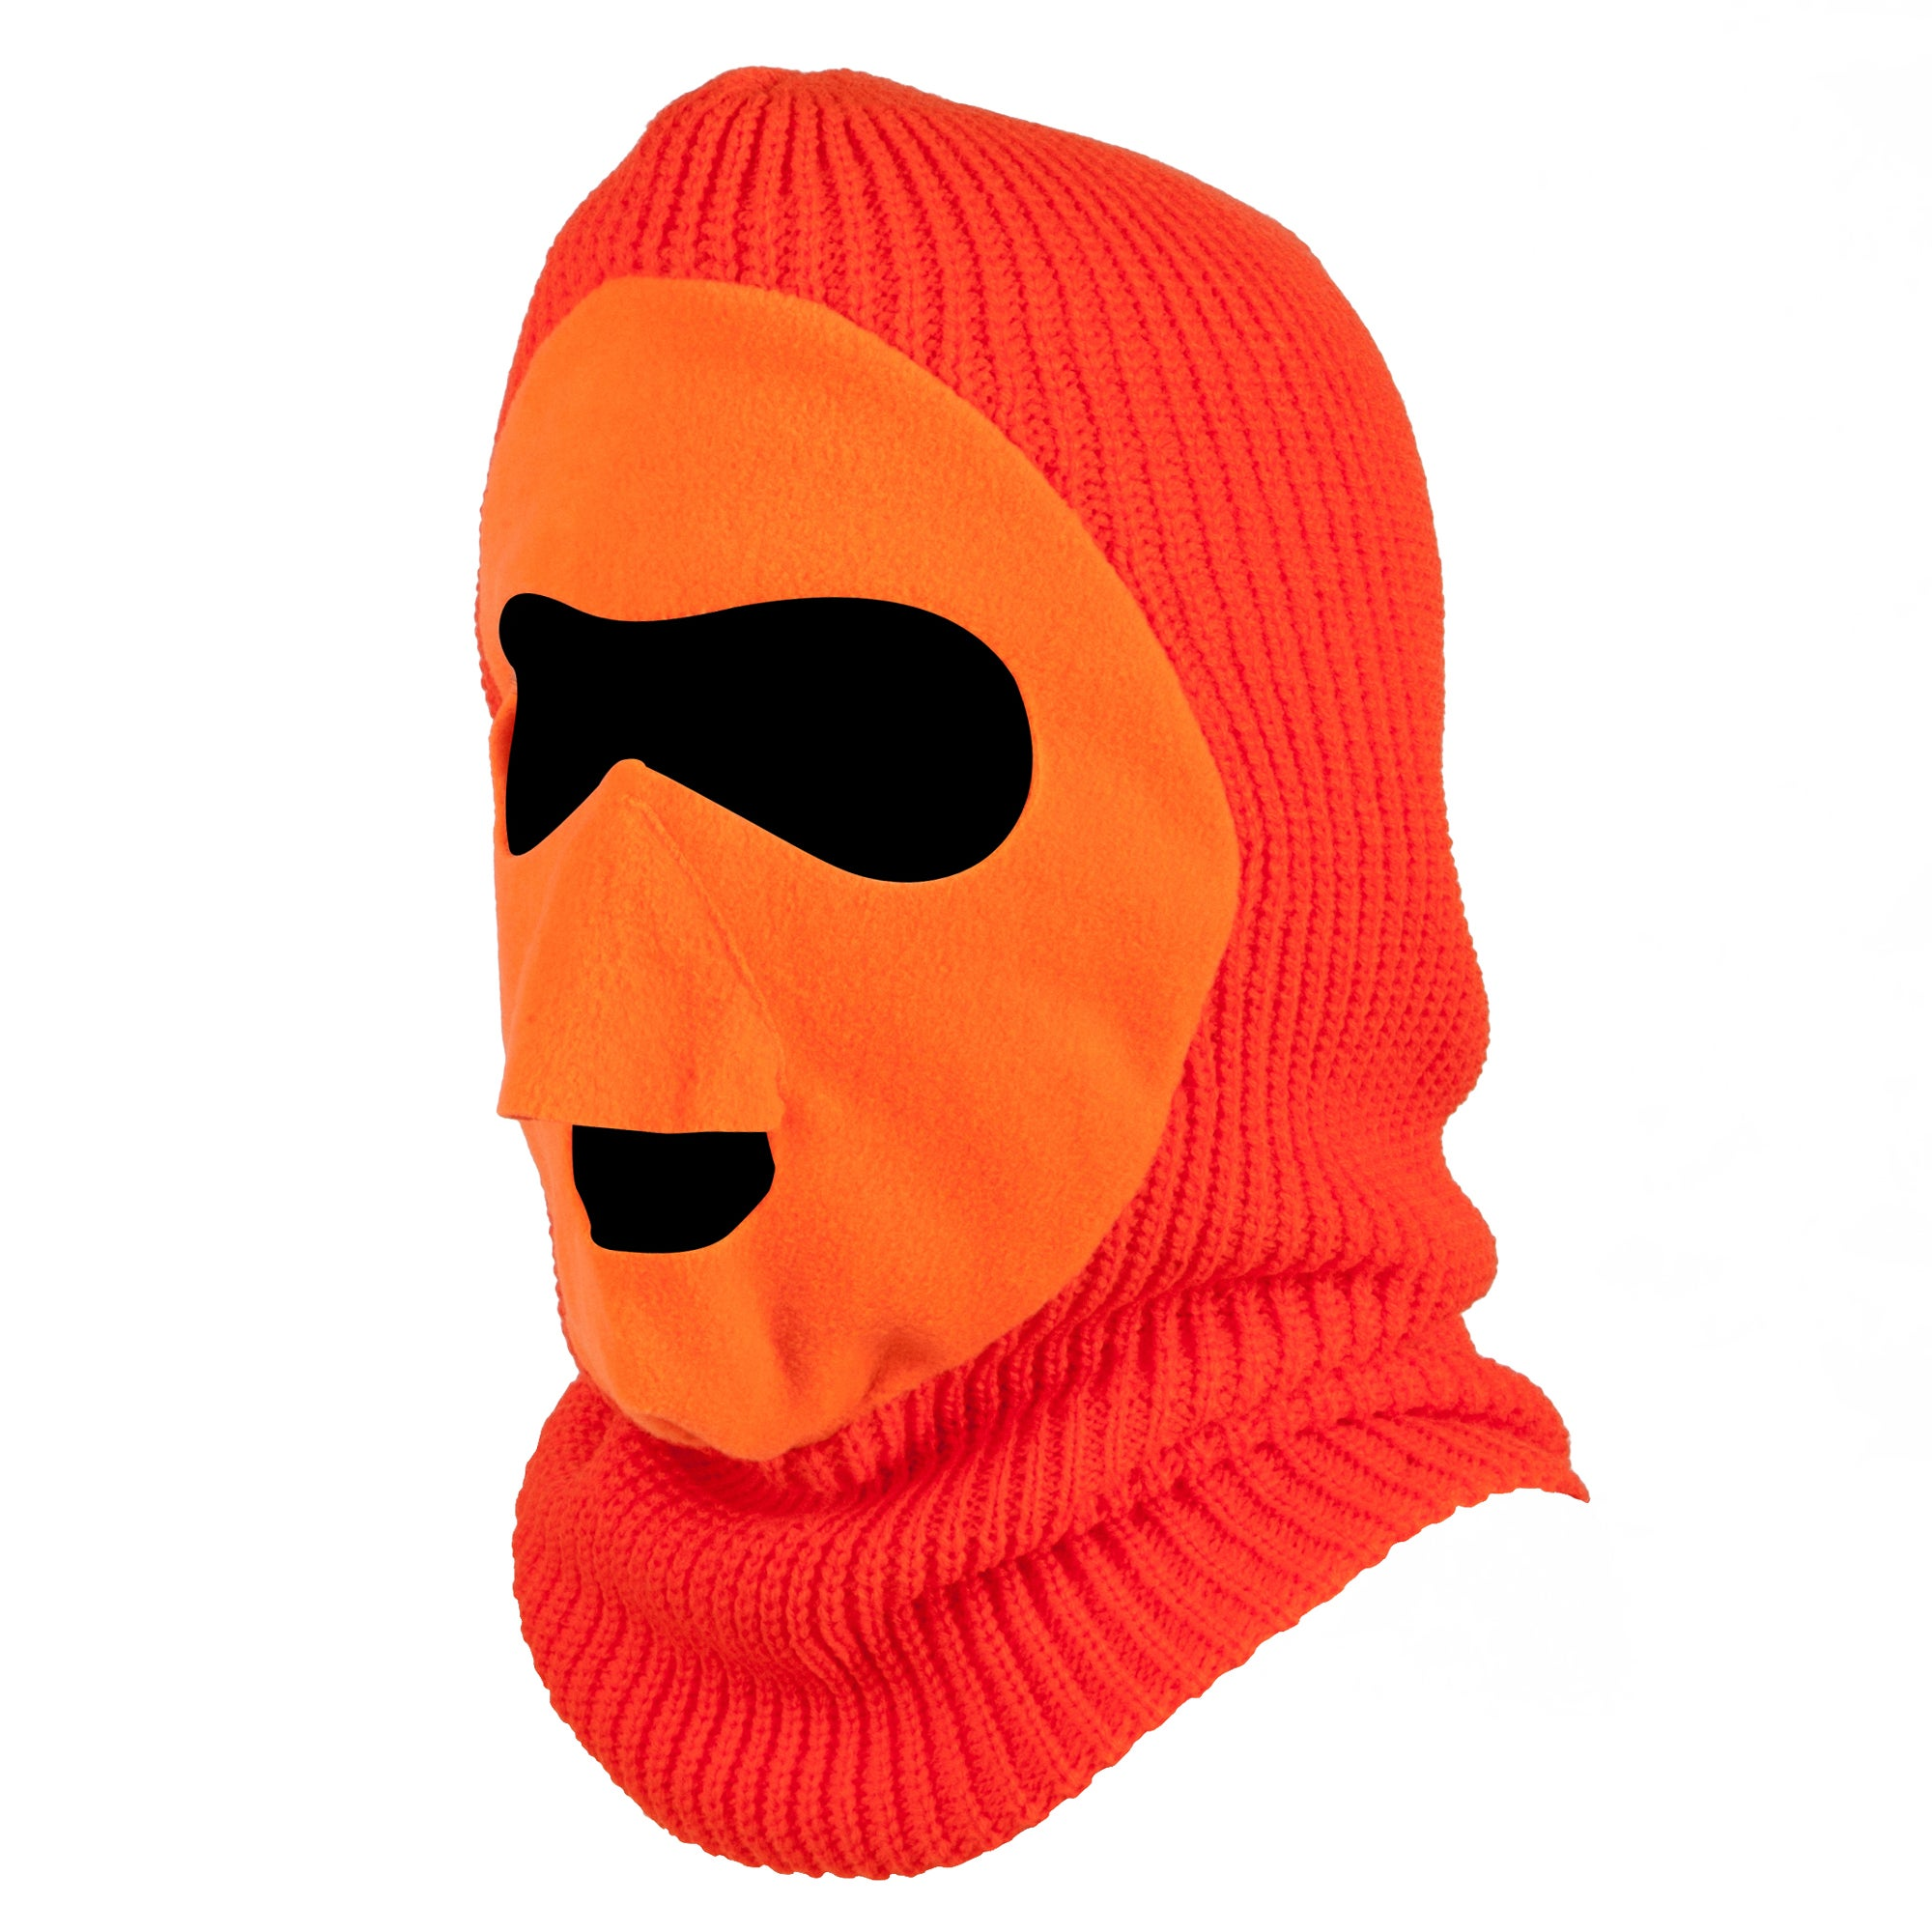 QuietWear Knit and Fleece Patented Mask